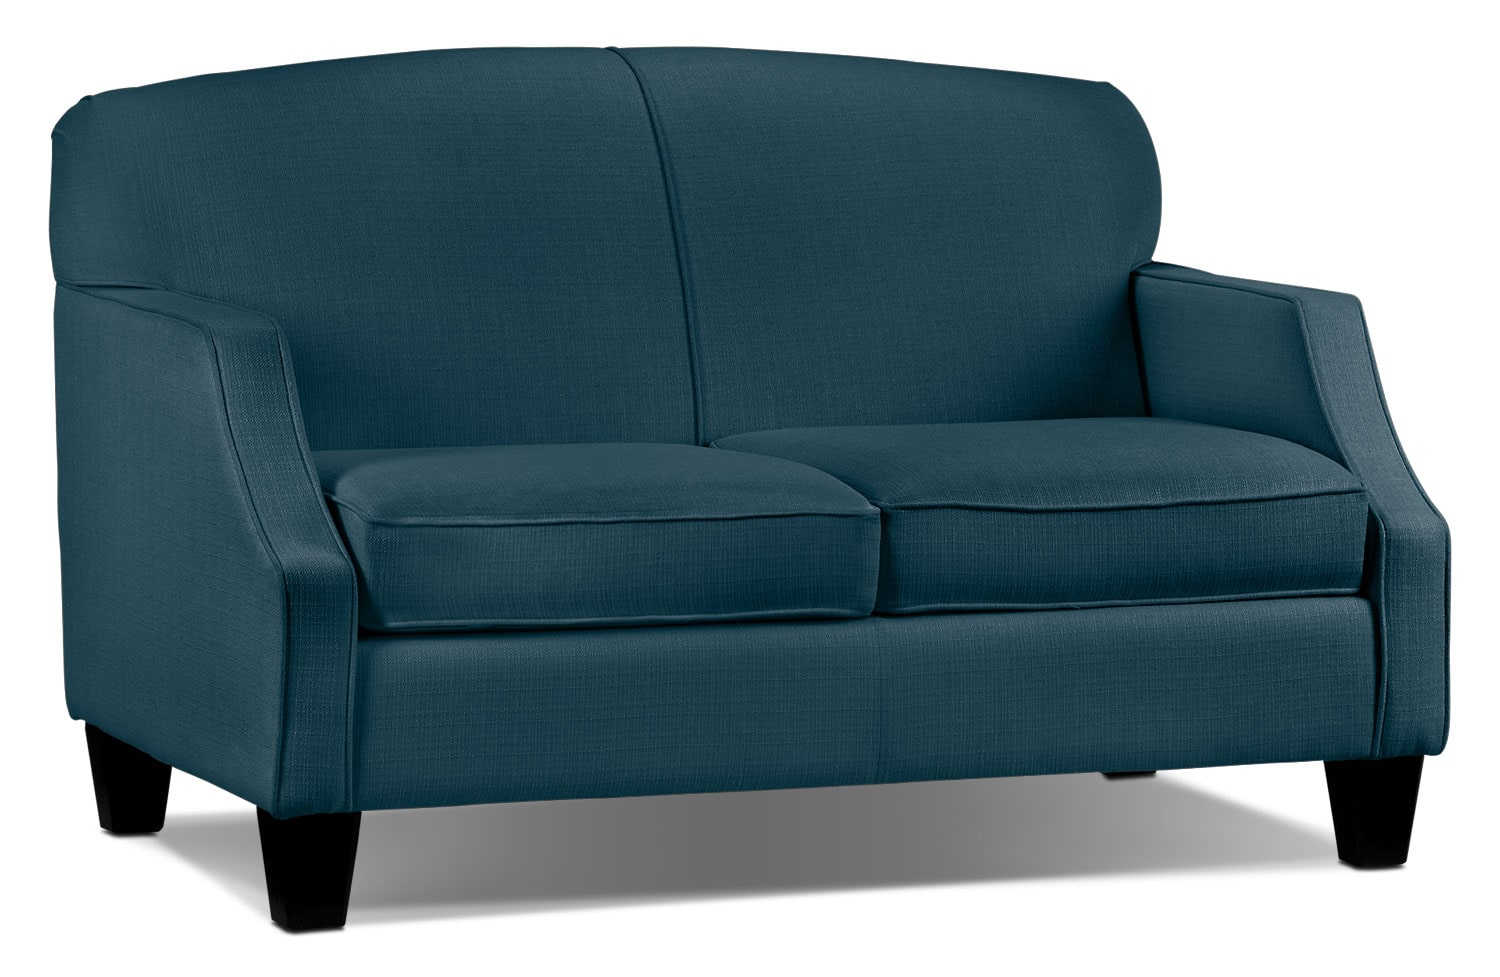 Living Room Furniture - Klein Loveseat - Azure